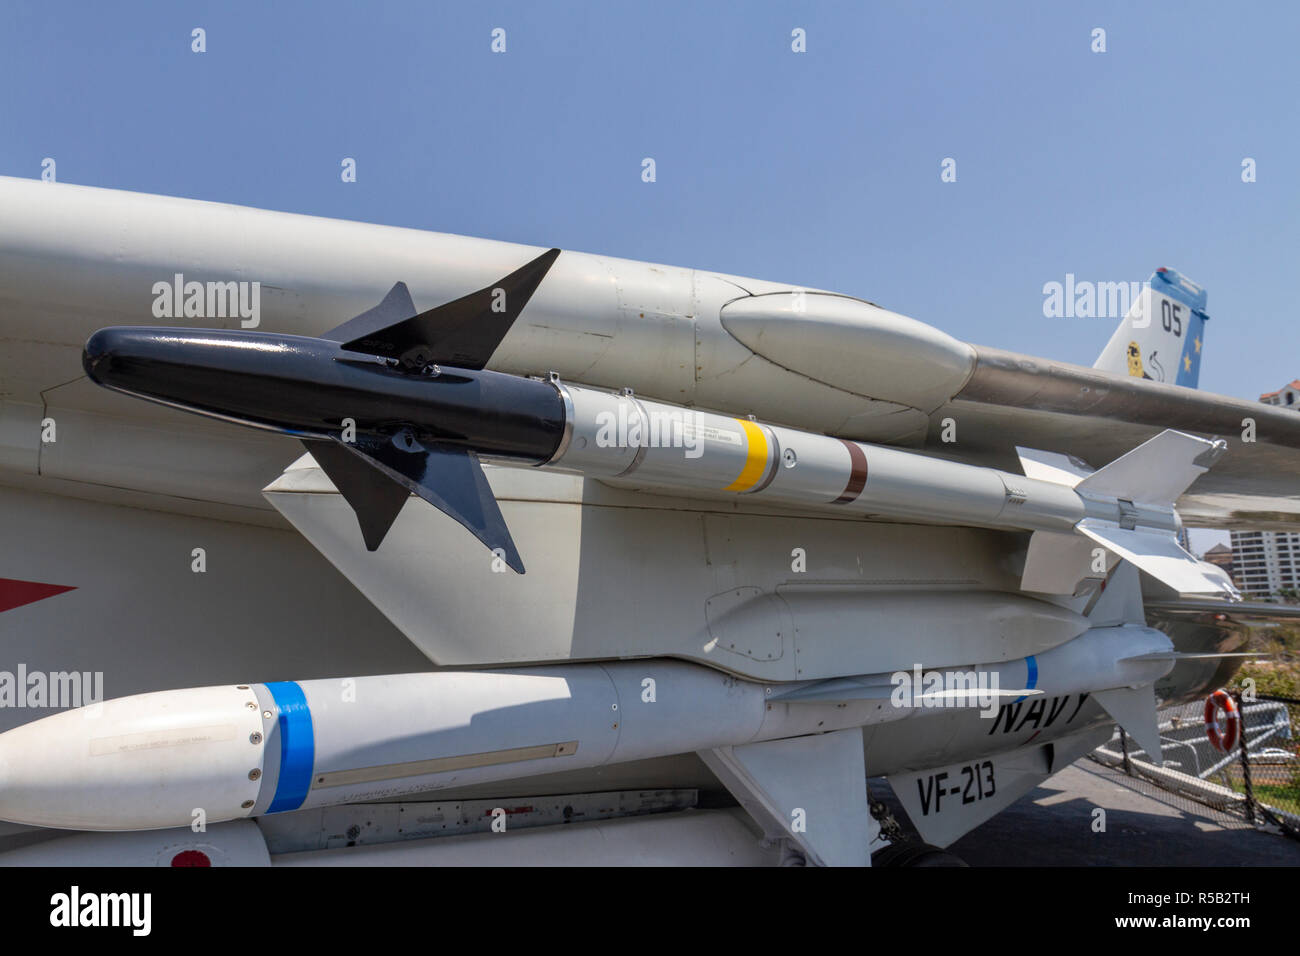 AIM-9 Sidewinder missile, F-14 Tomcat fighter aircraft, USS Midway Museum, San Diego, California, United States. - Stock Image